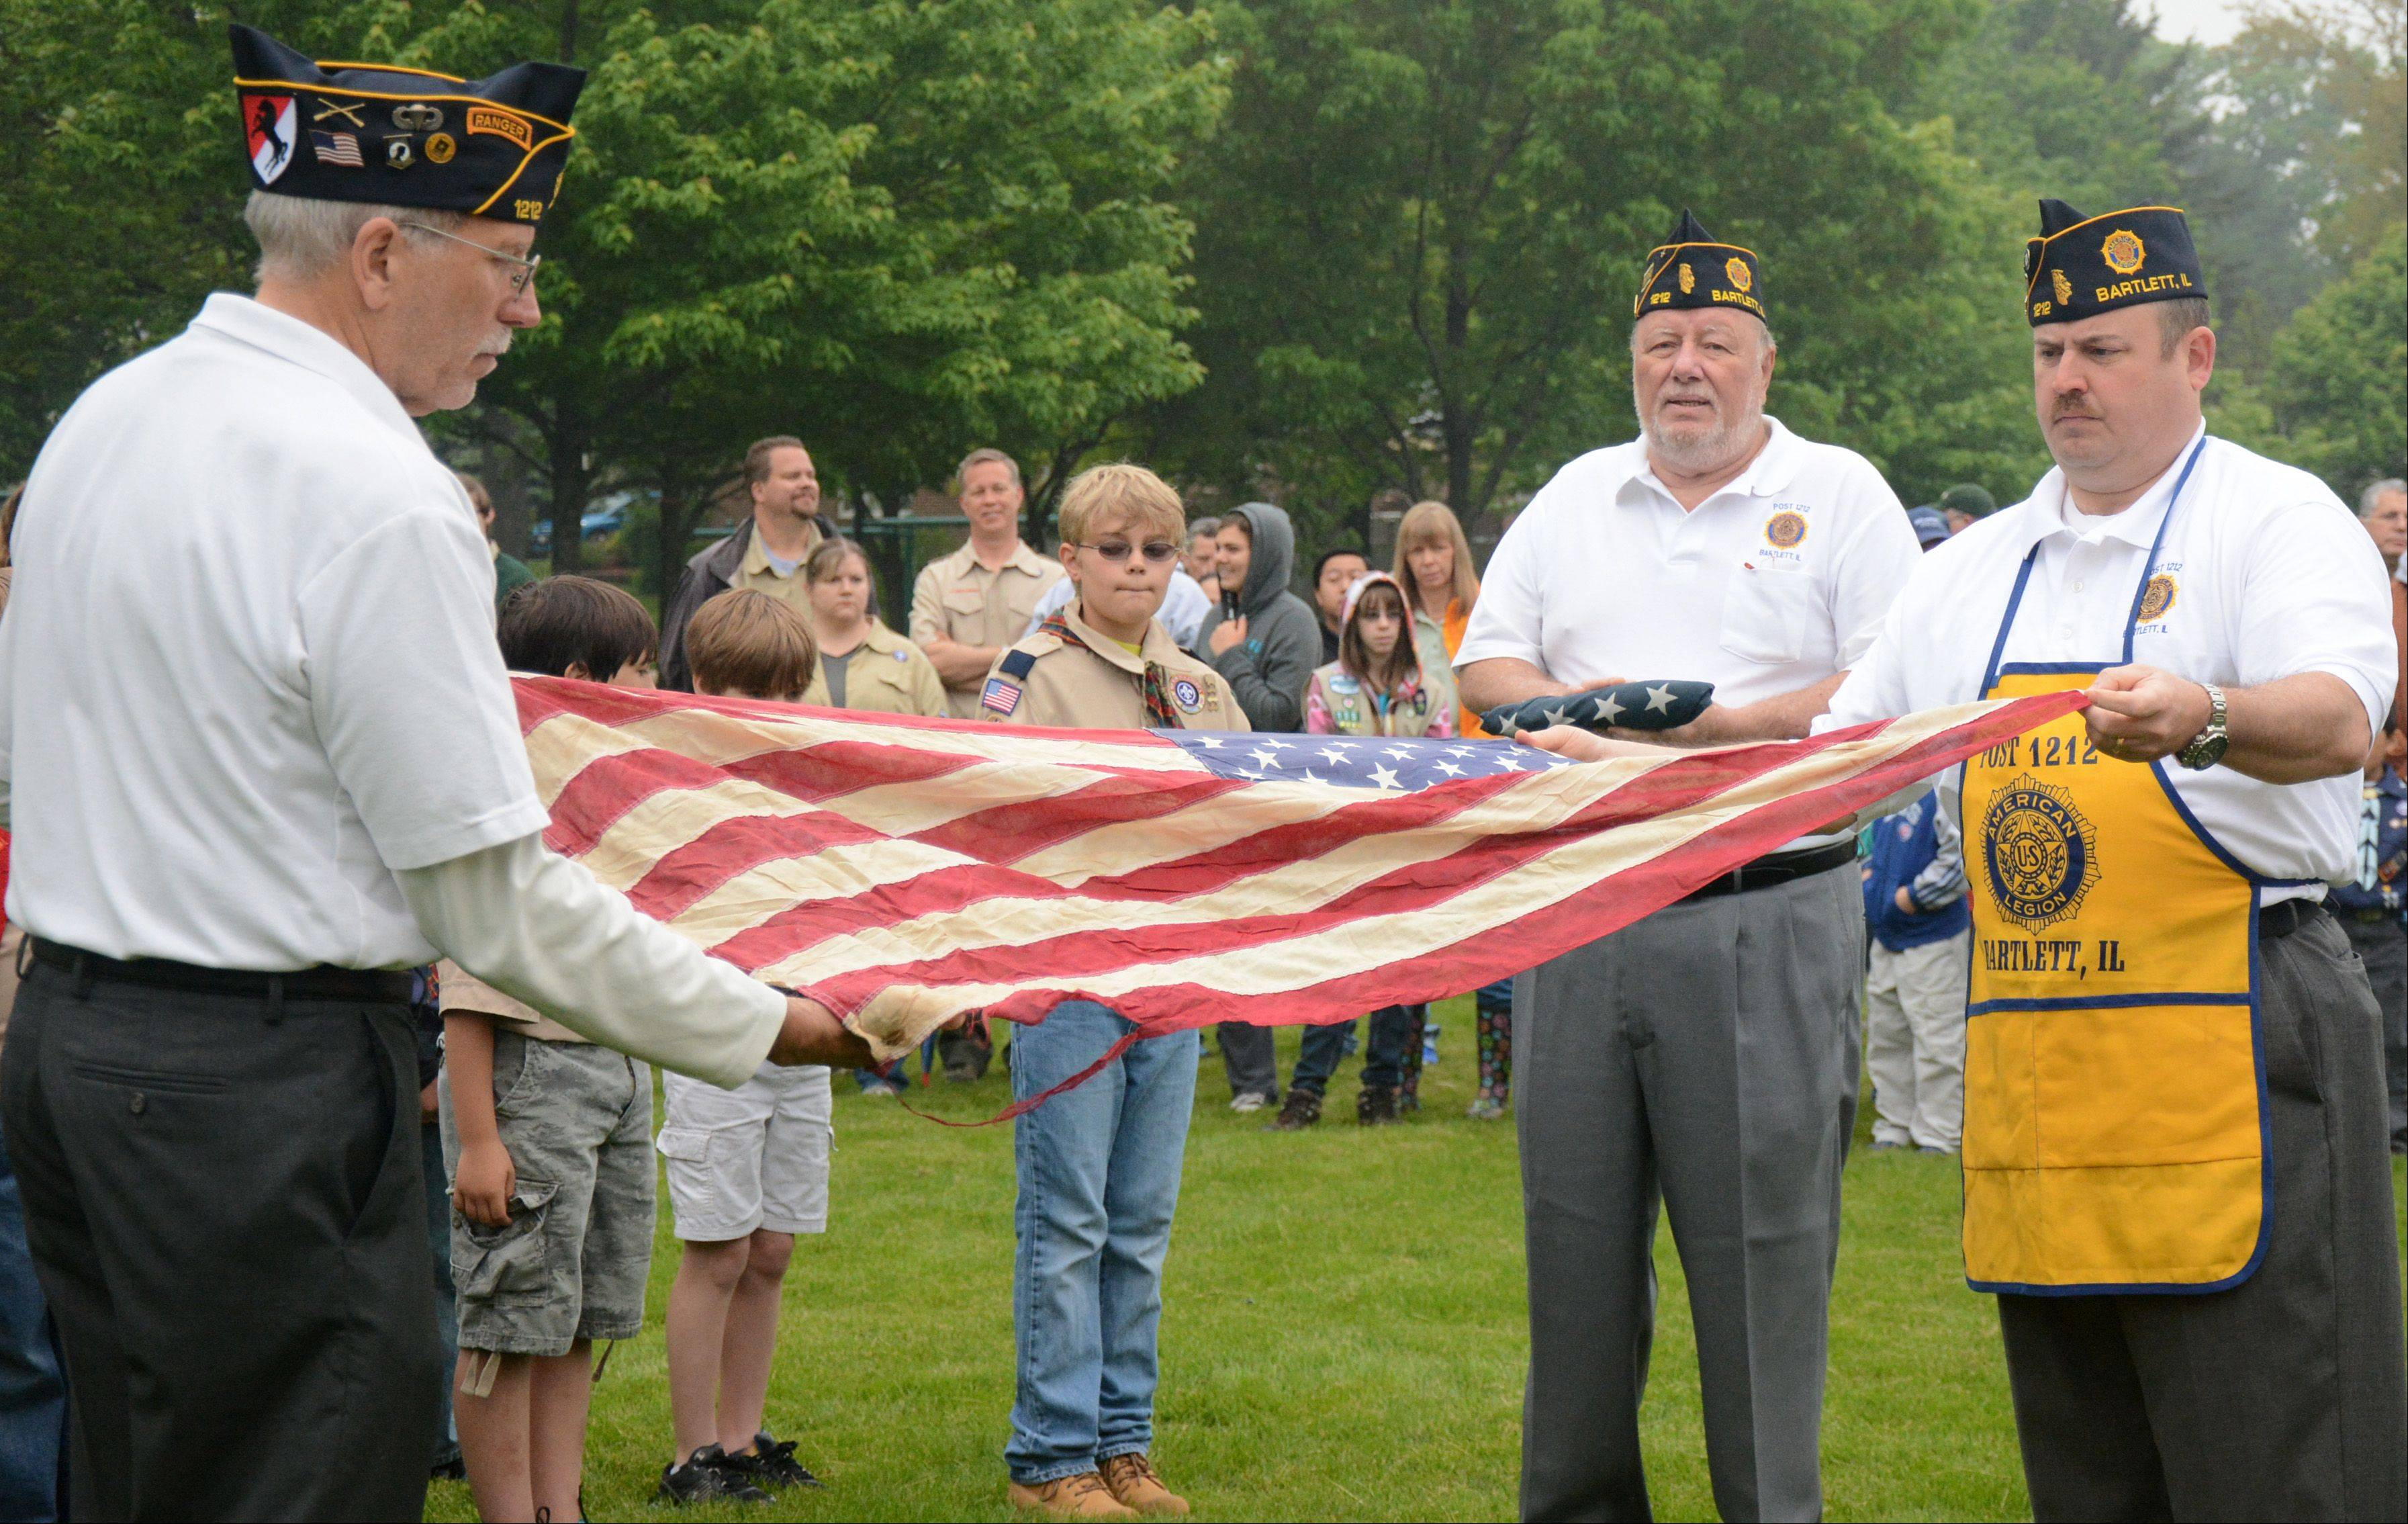 From left, VFW Post 1212 members Milt Lennert, Gene Ligocki and Derek Wright prepare a flag for burning during a flag retirement ceremony during the Bartlett Memorial Day ceremony on Monday.